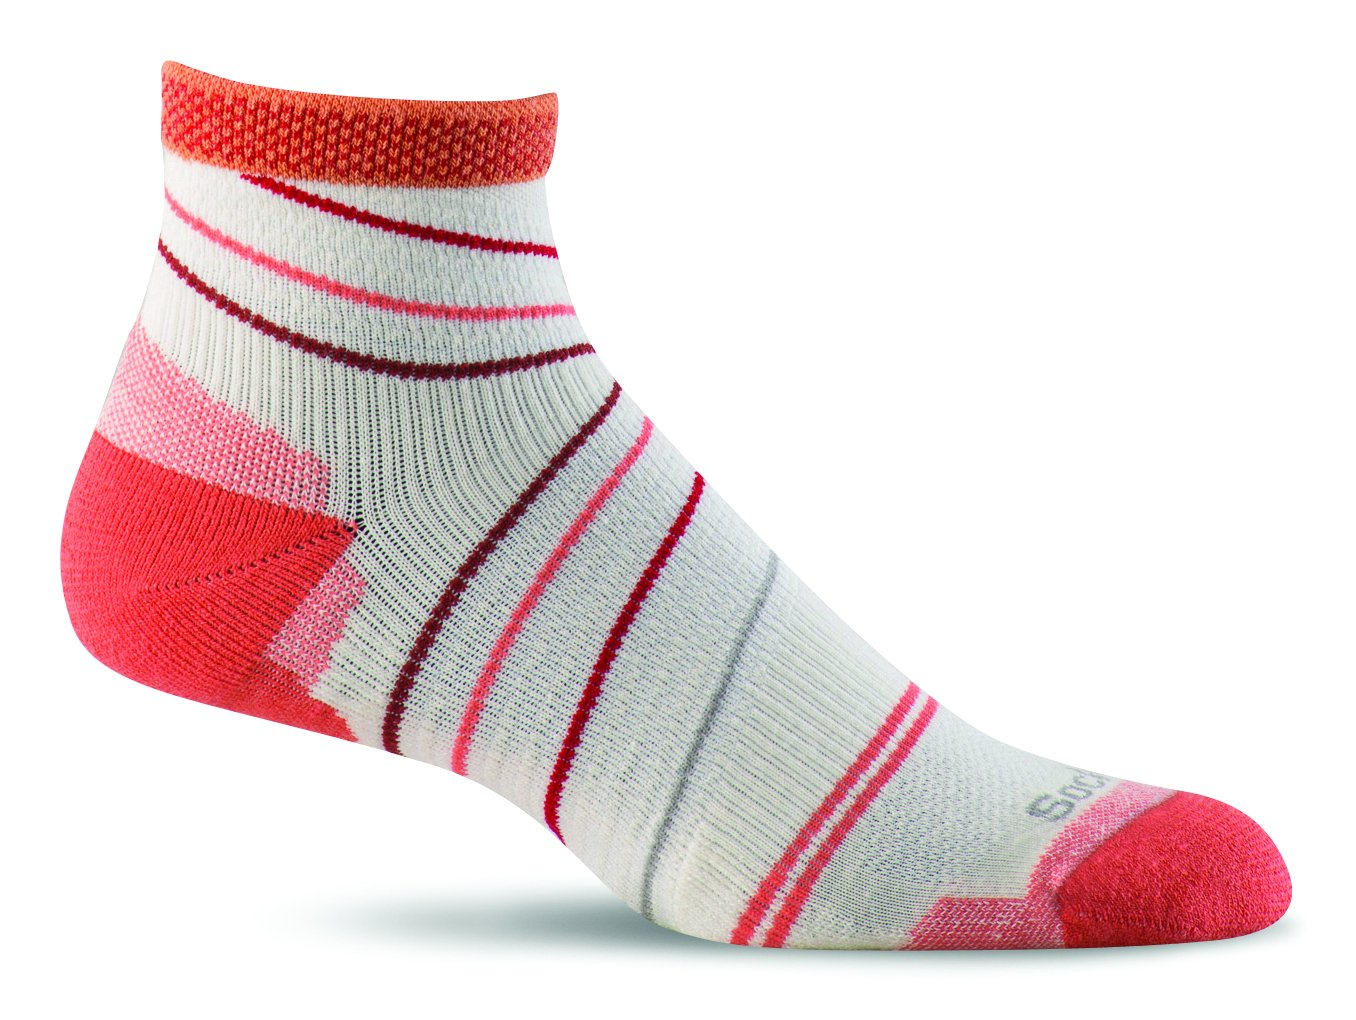 Sockwell Women's Pacer Quarter with Firm Support, Natural, Medium/Large